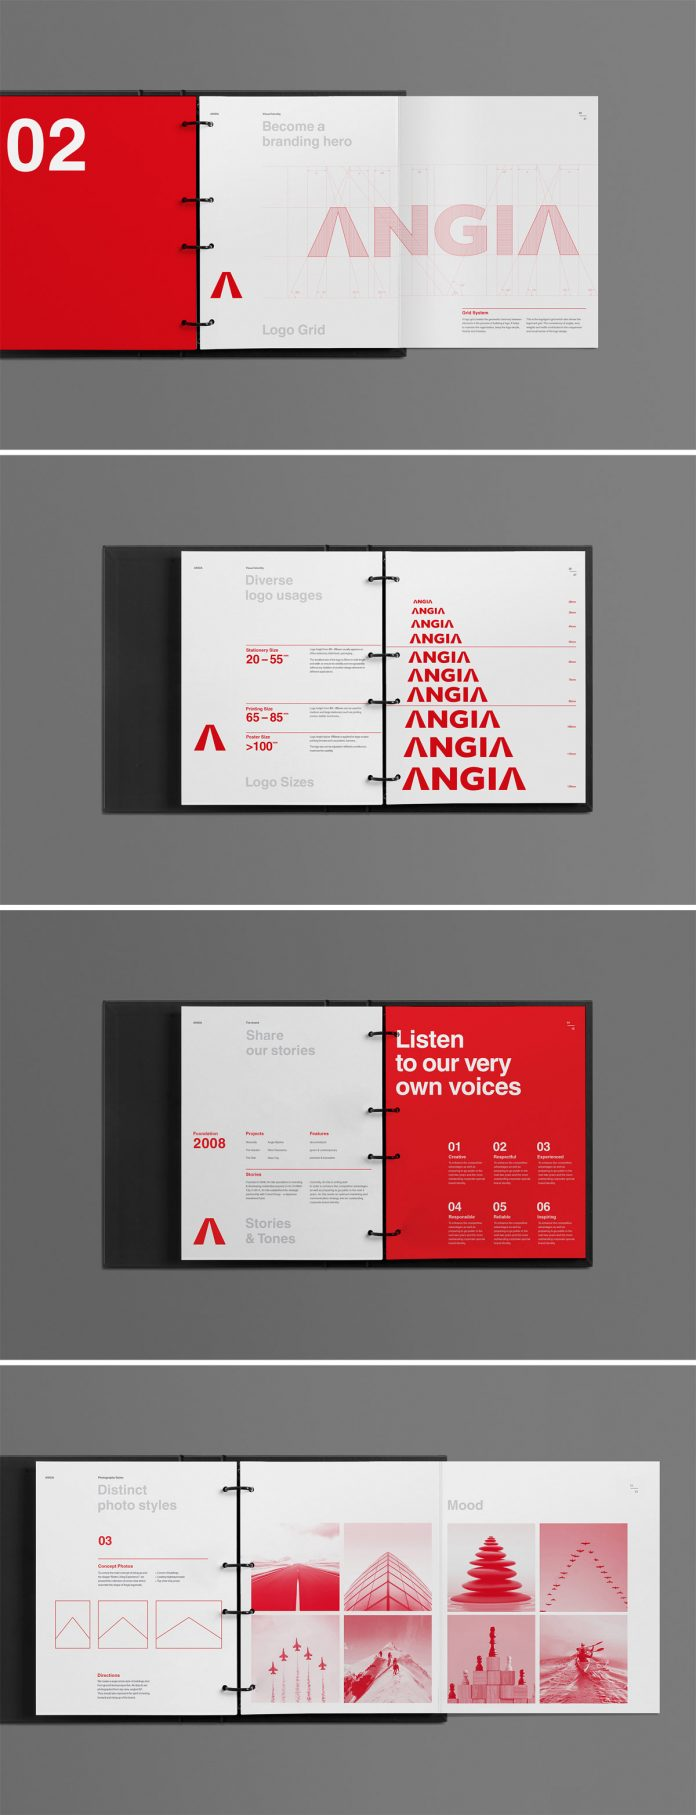 ANGIA graphic design and brand guidelines by Bratus.